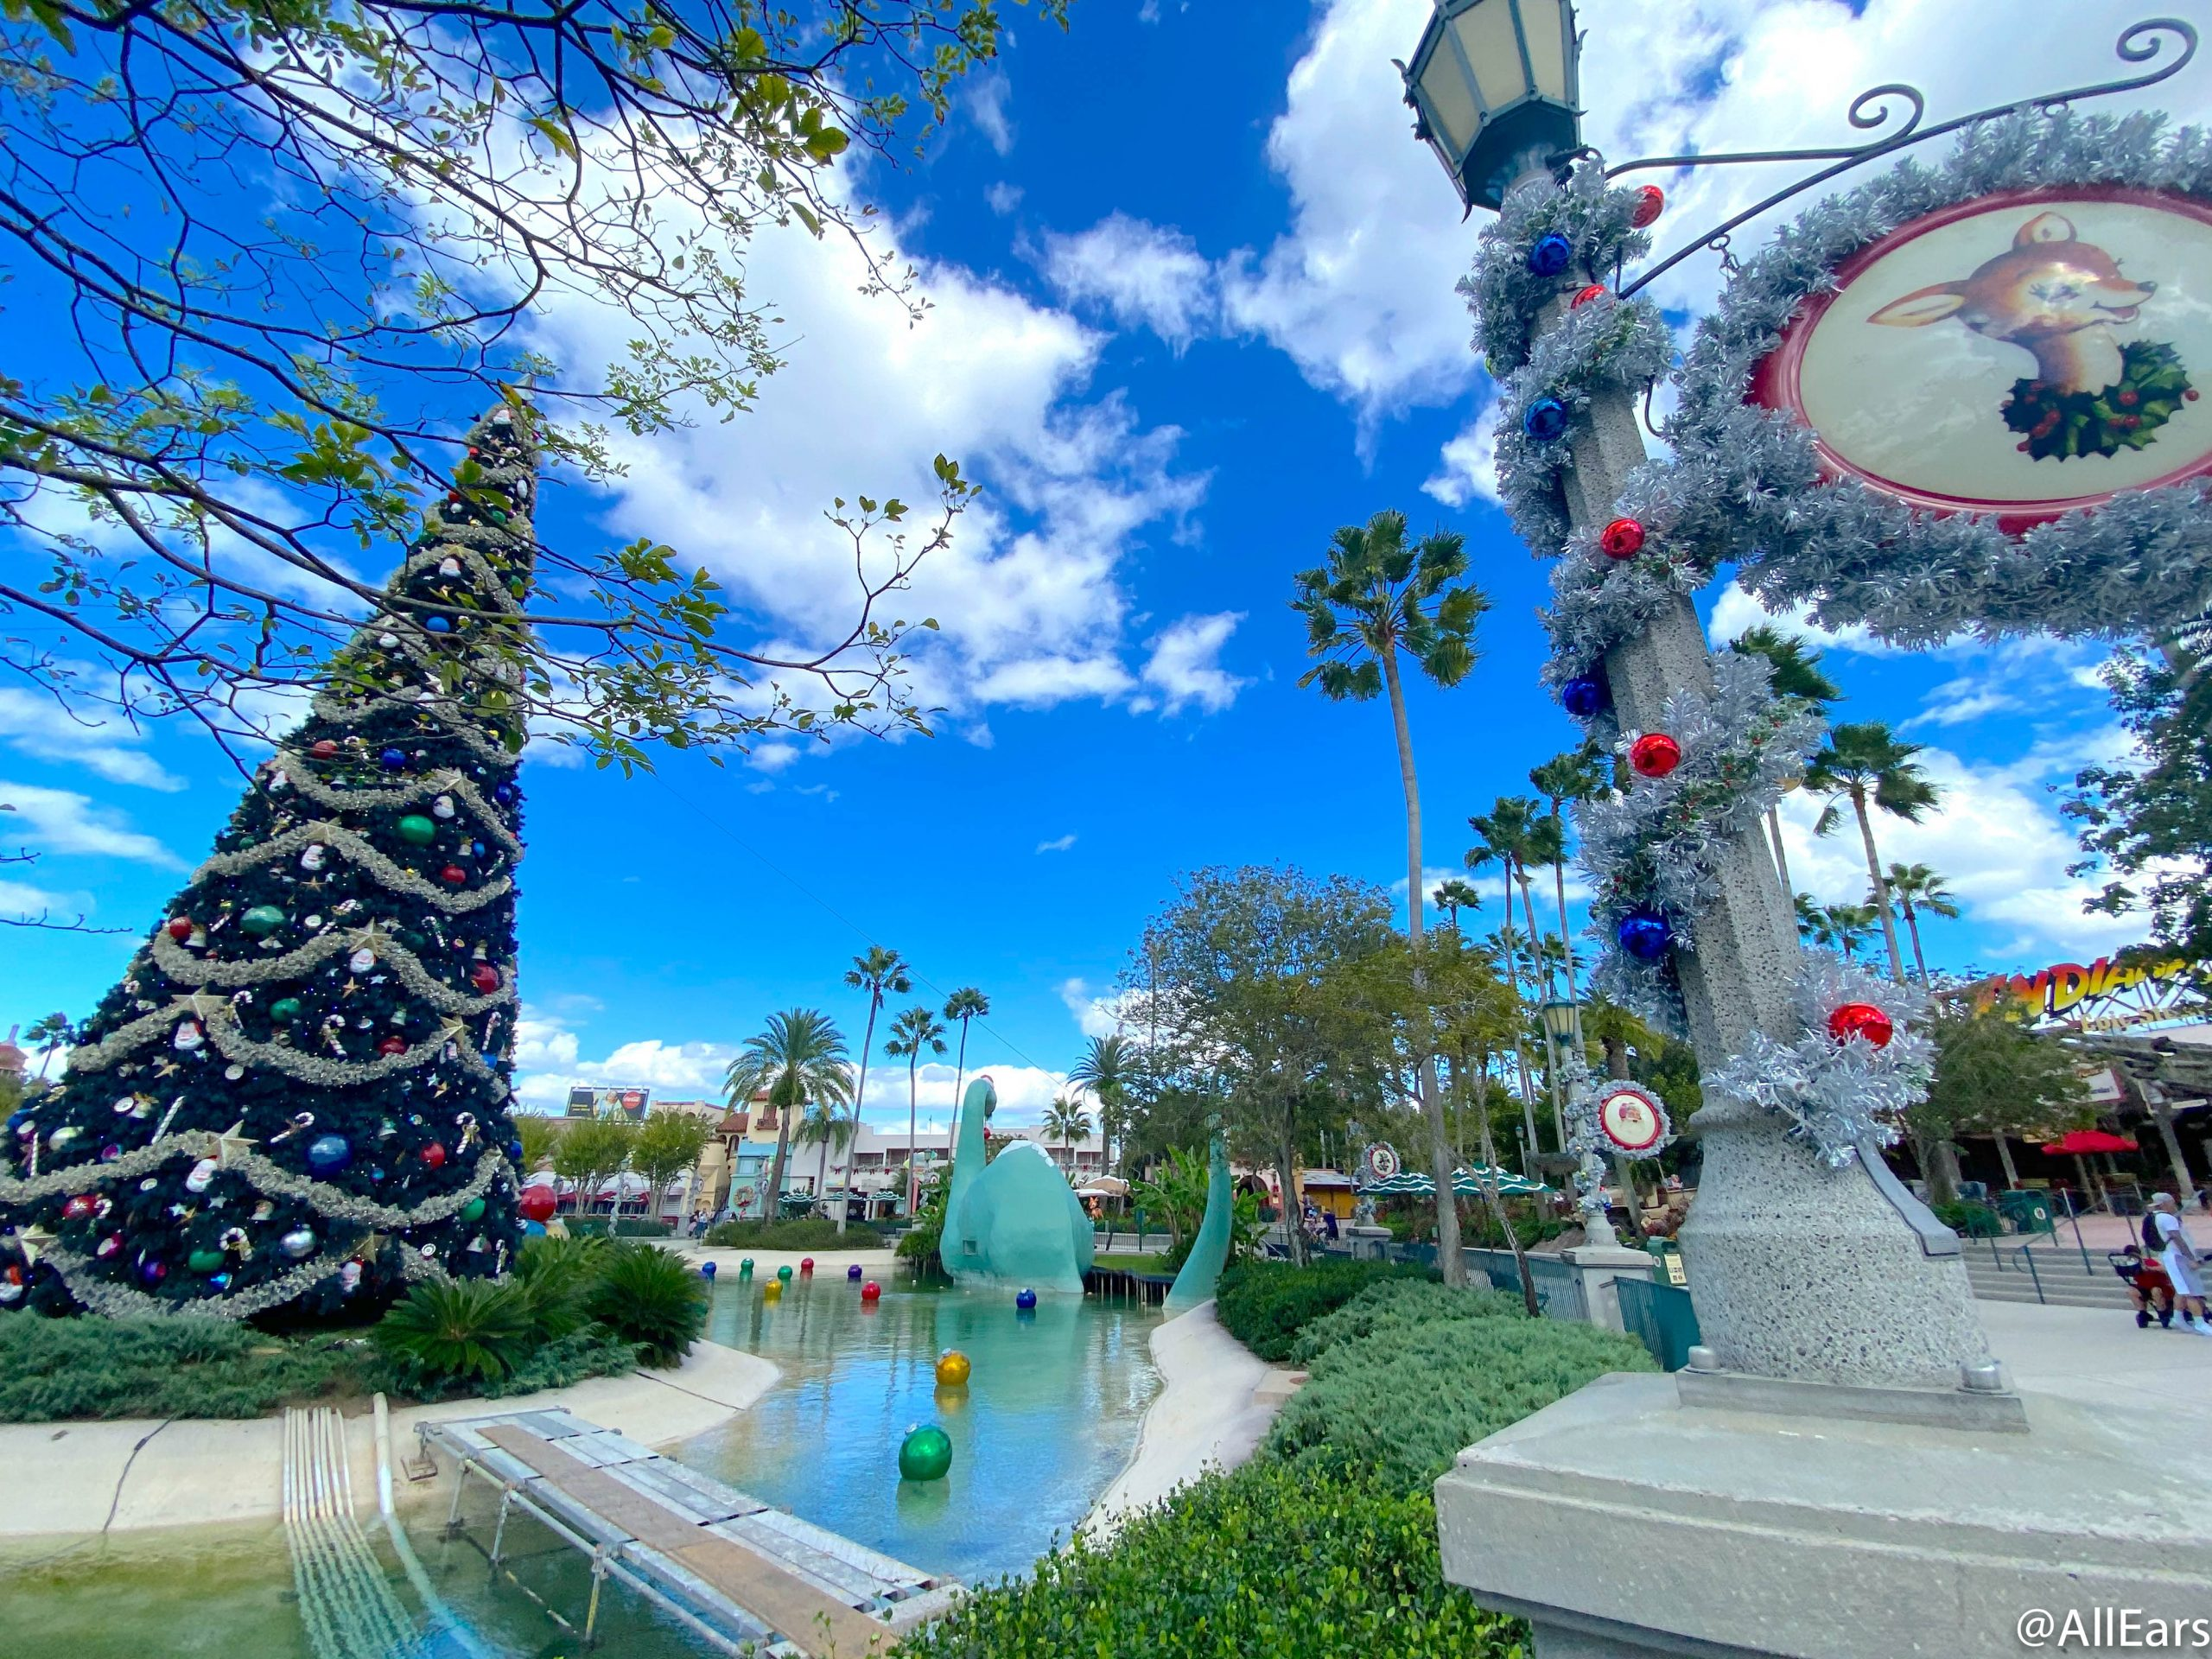 When Does   Hollywood Decorate For Christmas 2020 PHOTOS: MORE Holiday Decorations Have Arrived in Disney's